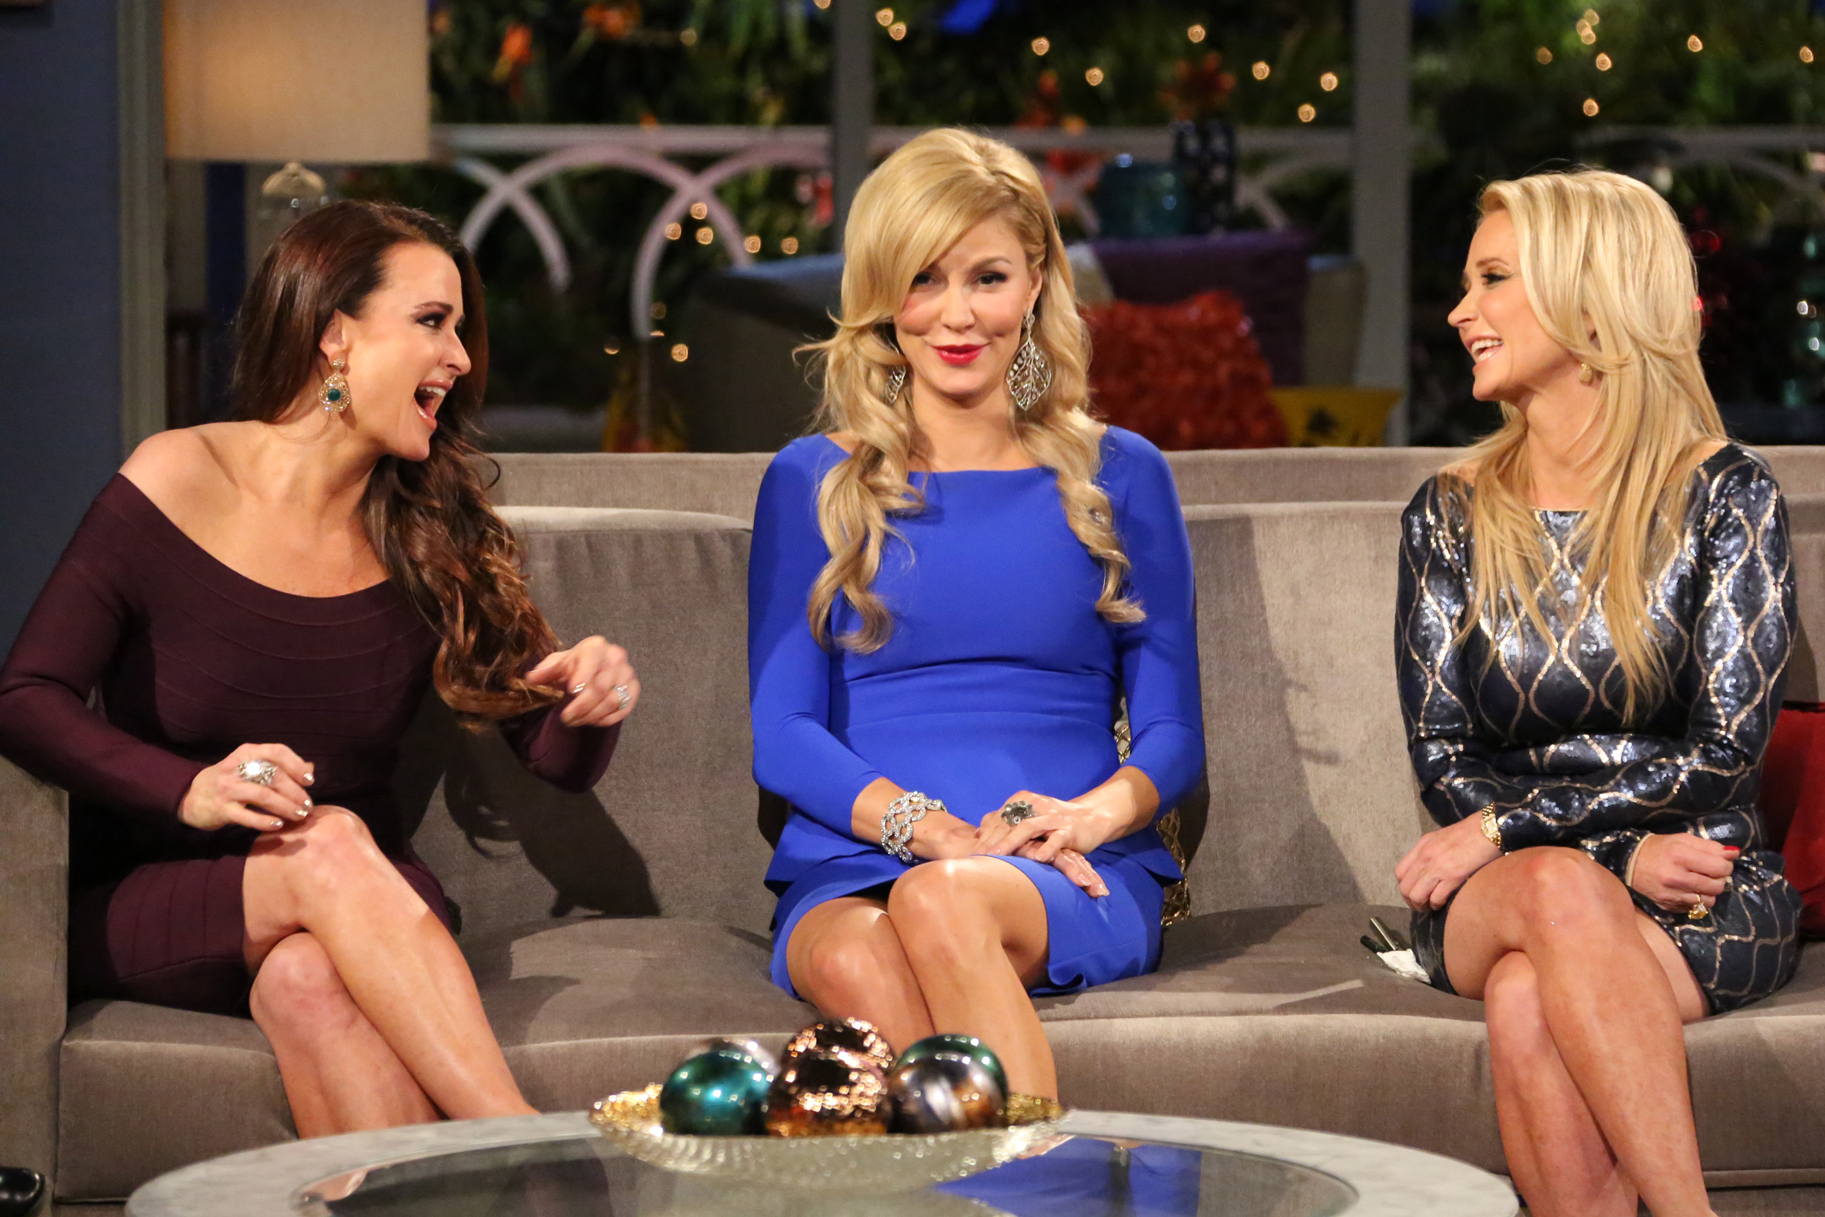 Brandi Glanville Kim Kyle Richards